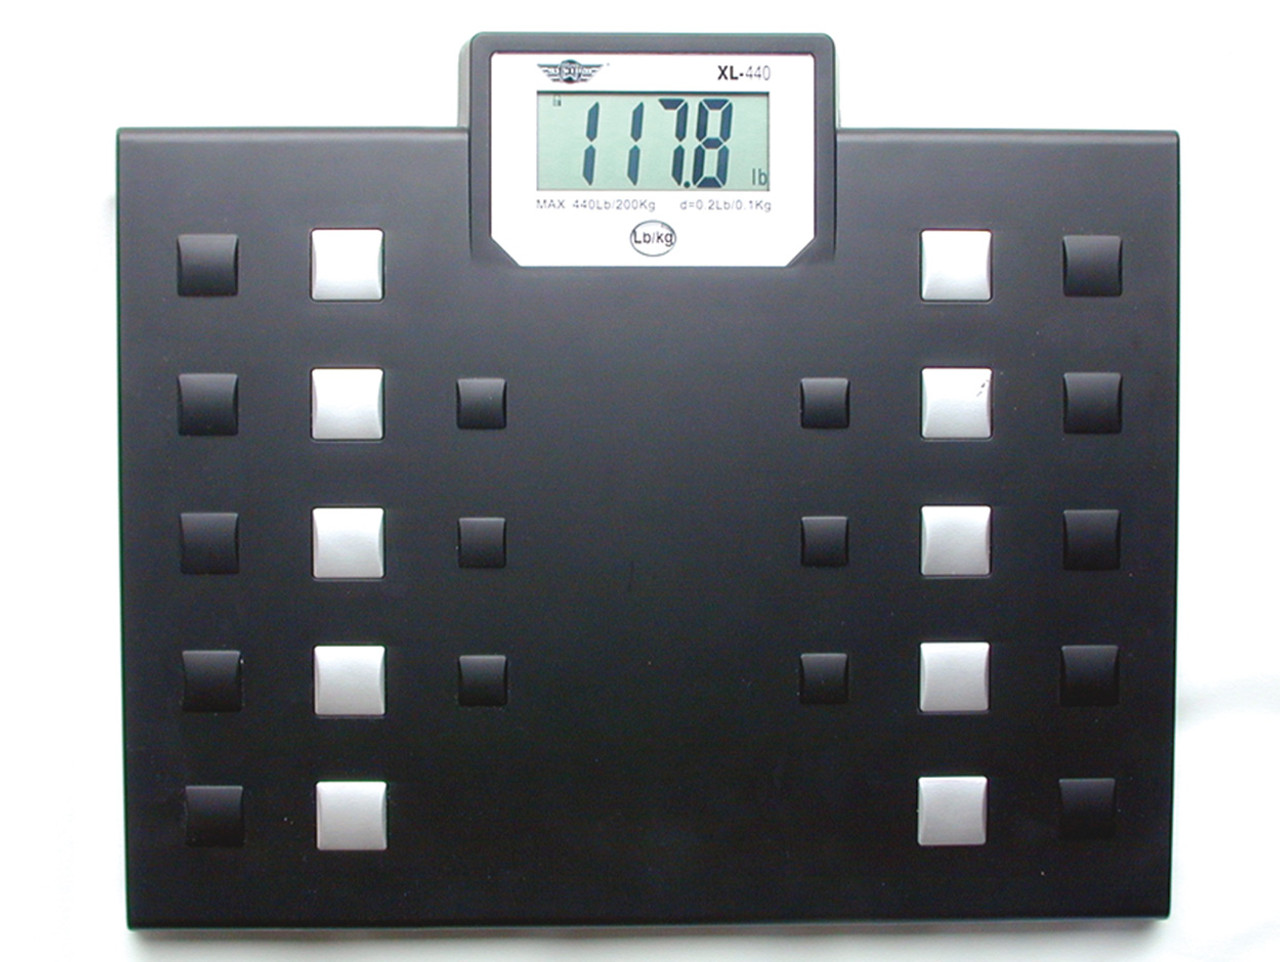 Superior Clear Voice Talking Scale - 550lbs